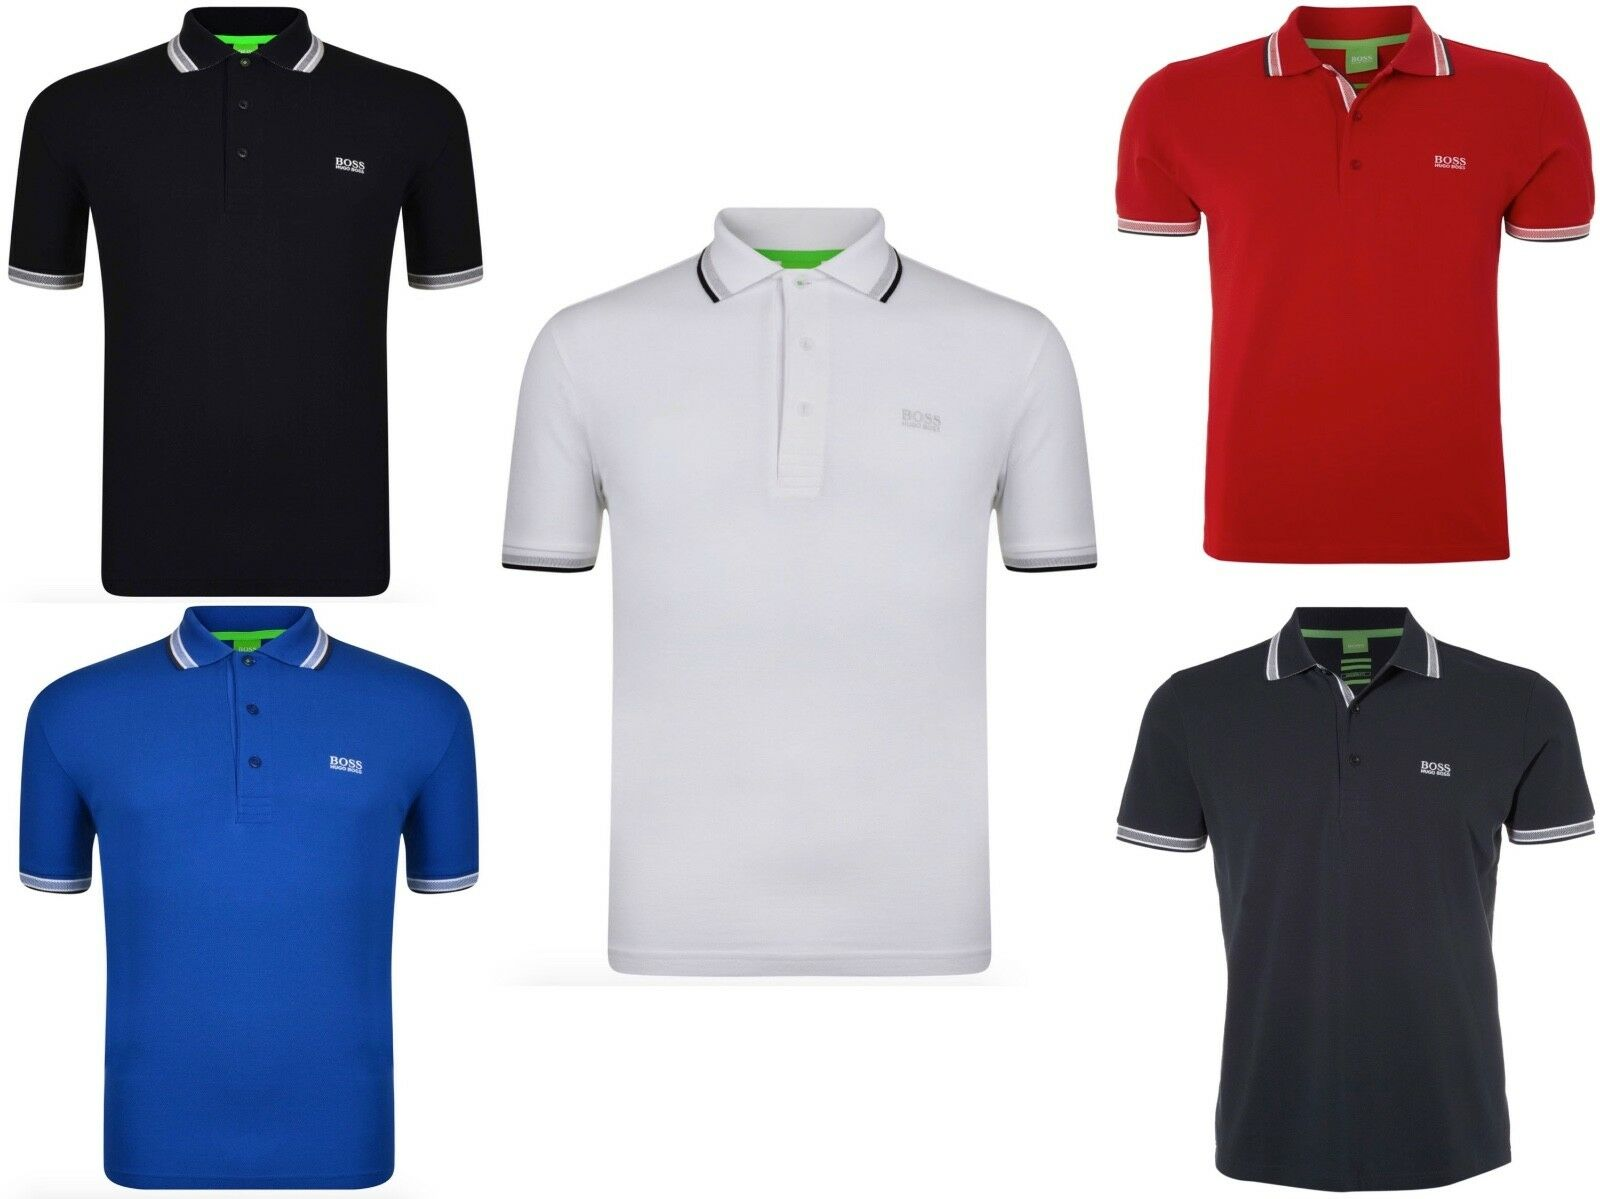 Hugo boss men 39 s polo t shirt cotton regular fit polo s xxl for Hugo boss polo shirts xxl